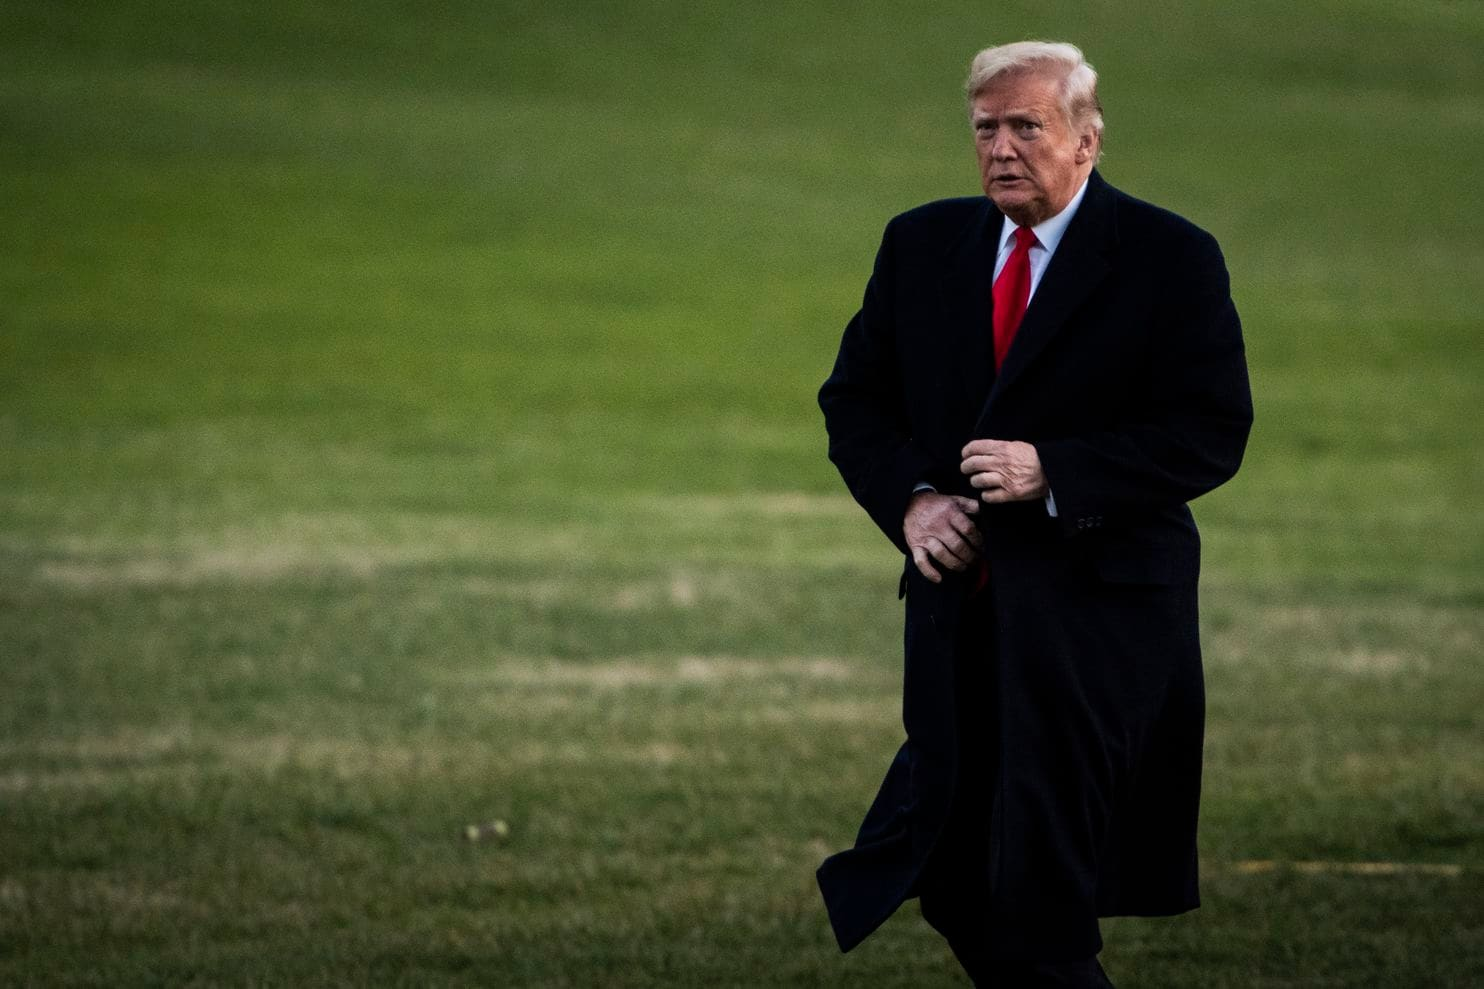 President Trump walks across the South Lawn of the White House on Dec. 7. A person familiar with his schedule said Trump spent more time than usual in his official residence this week.  [Photo: Jabin Botsford/The Washington Post]